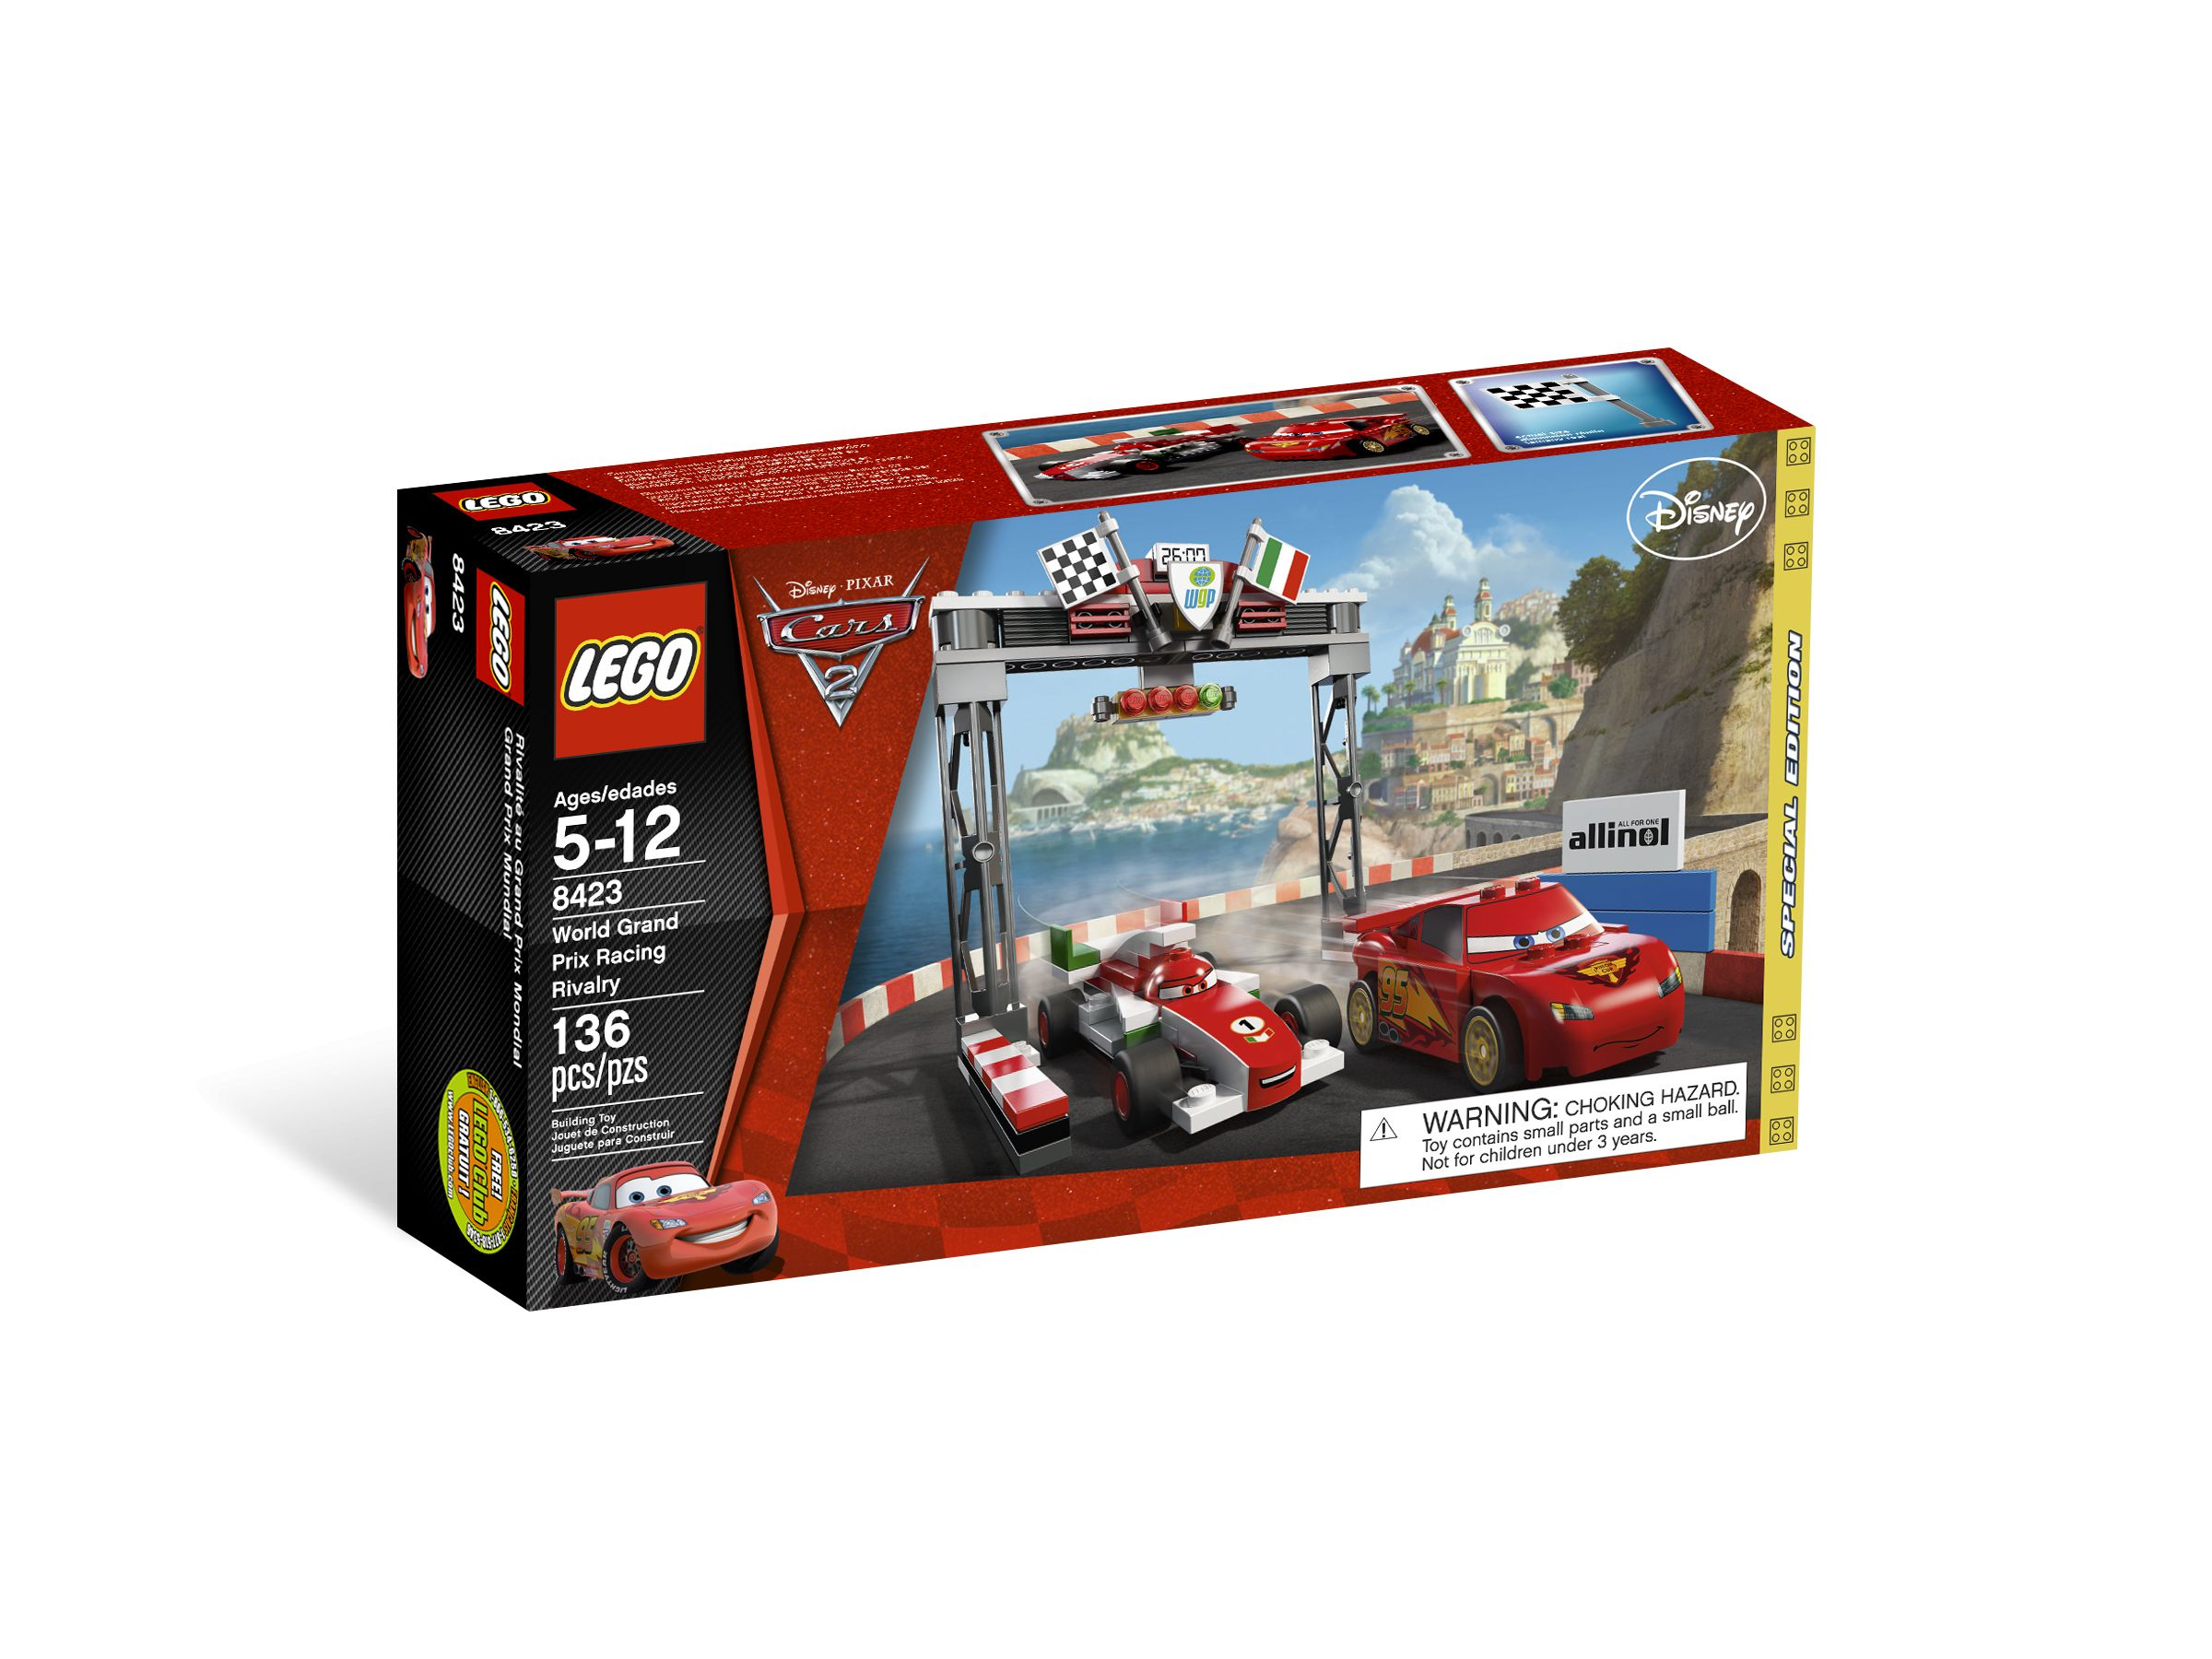 LEGO Cars 8423 World Grand Prix Racing Rivalry LEGO_8423_alt1.jpg